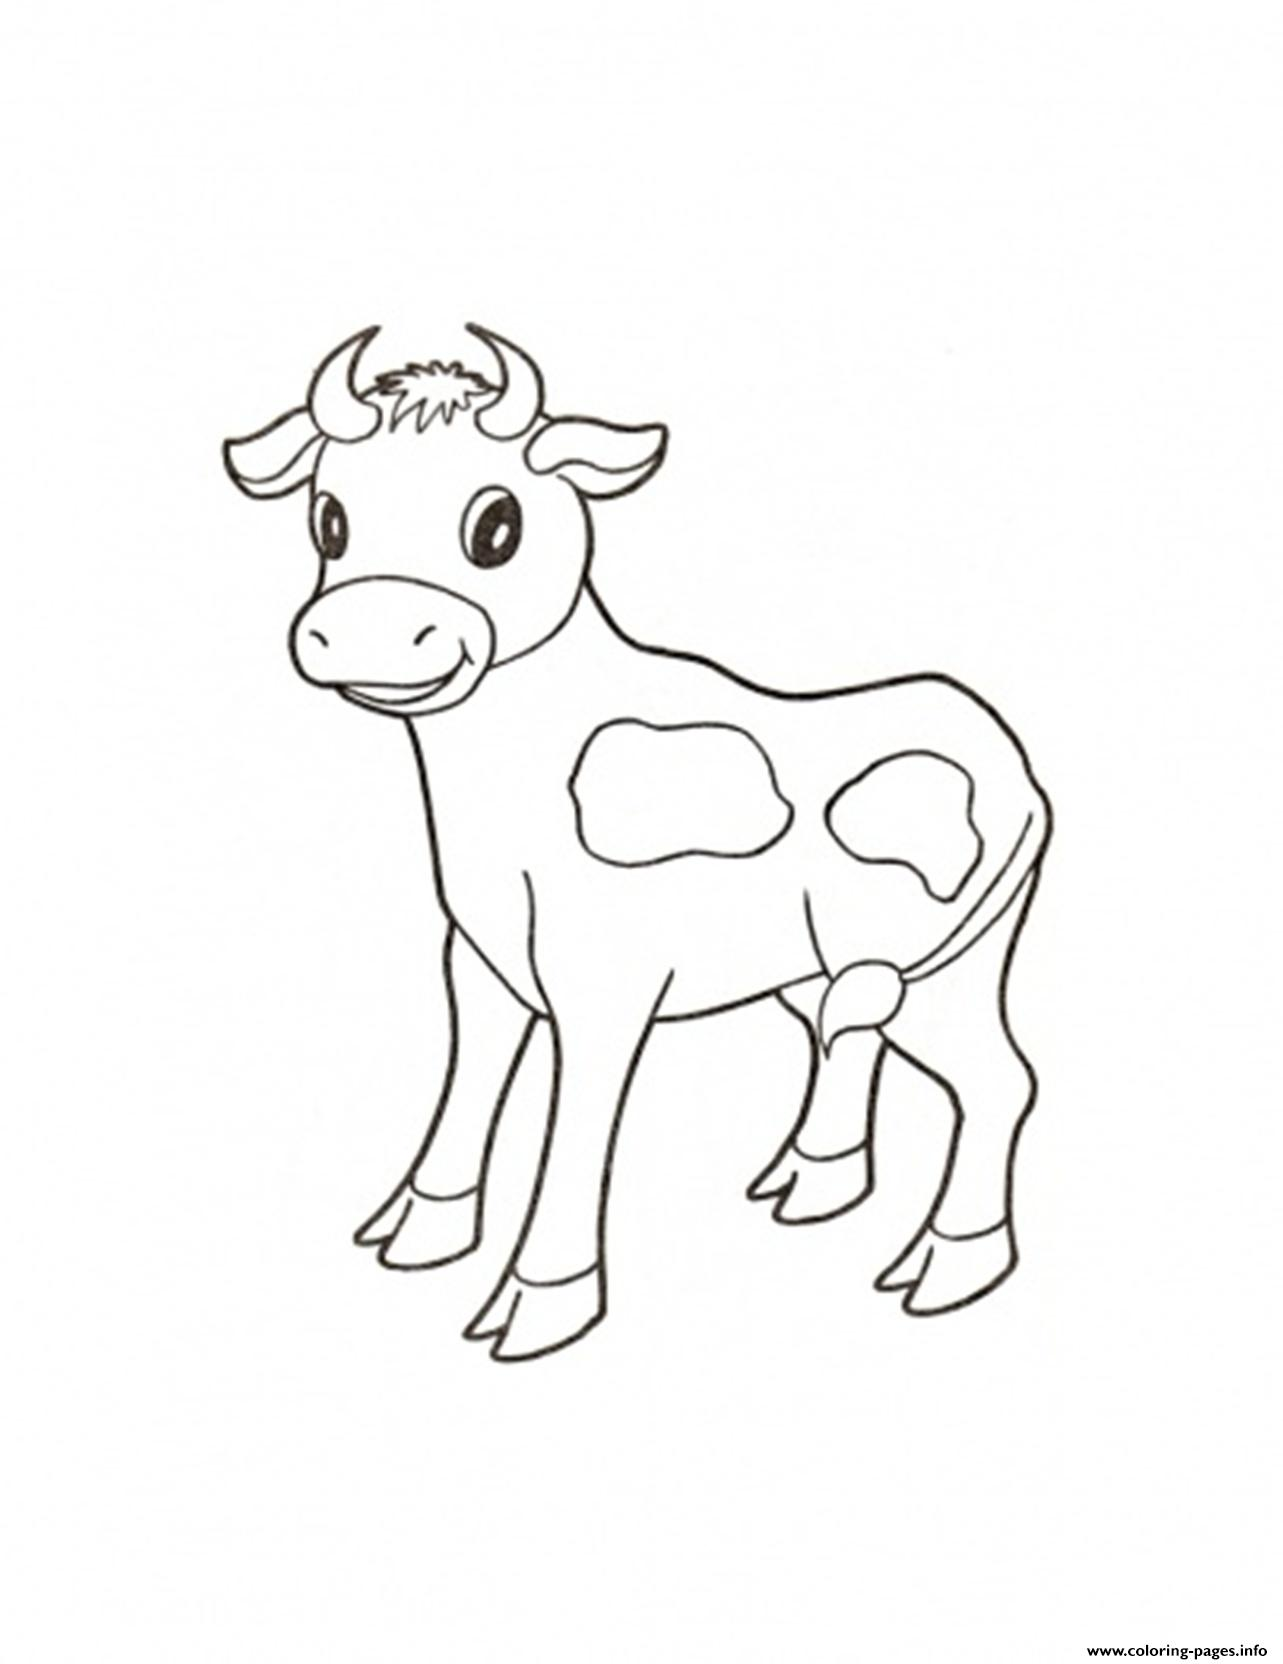 Cute Calf Farm Animal S32ee Coloring Pages